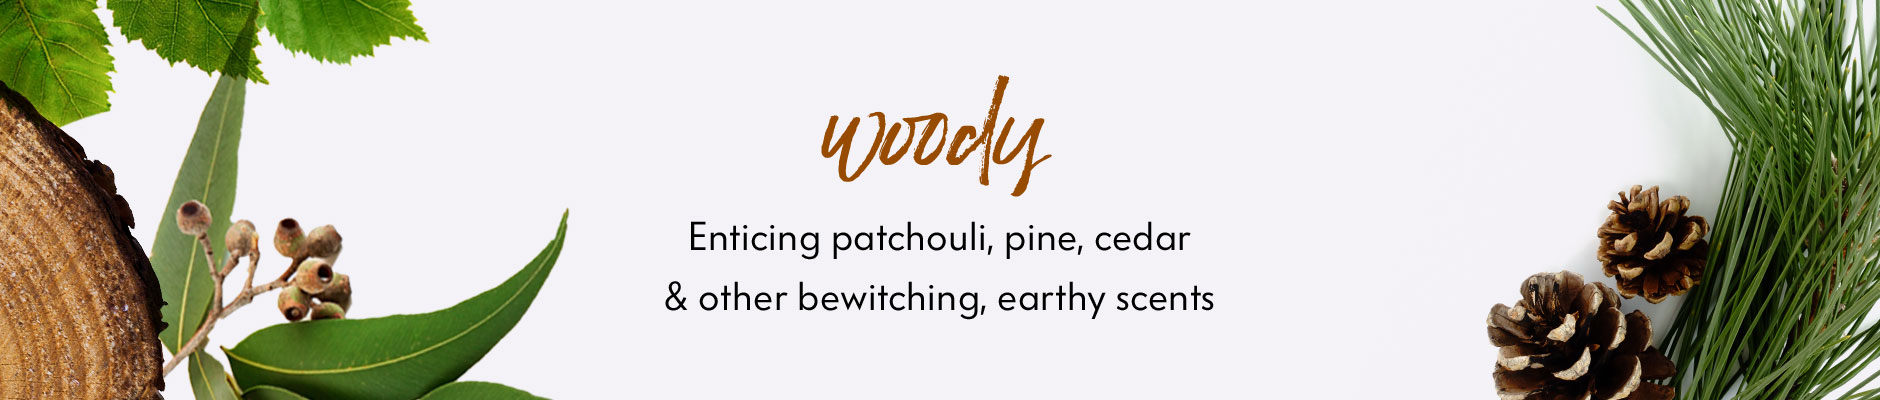 Fragrance Finder: Woody